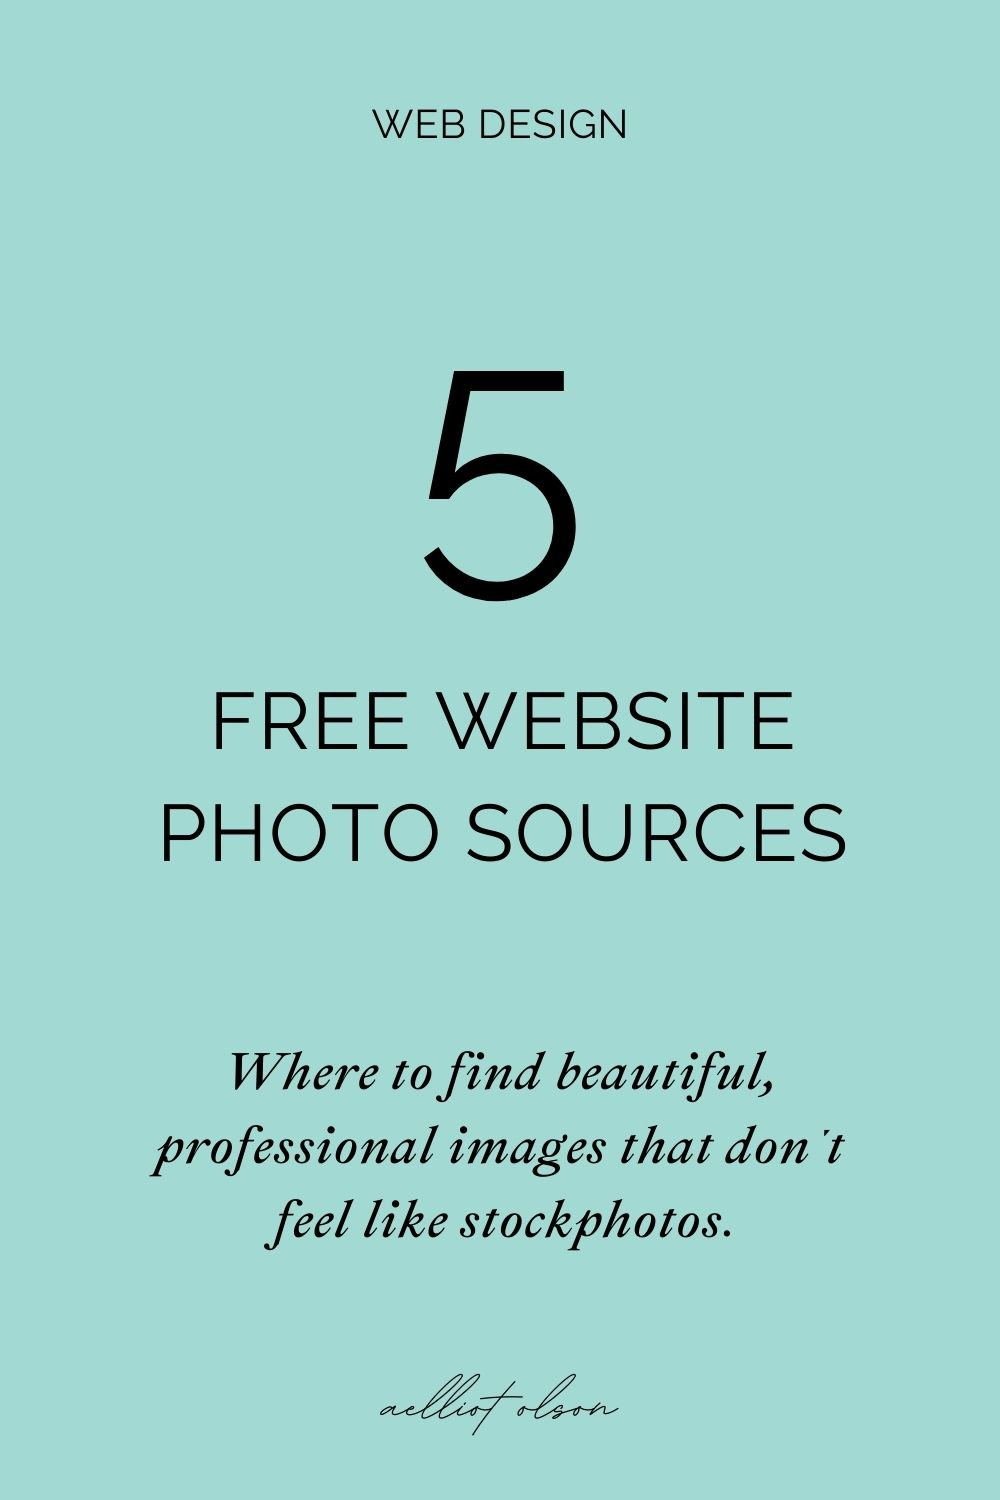 5 free website photo sources. Where to find beautiful, professional images that don't feel like stockphotos.